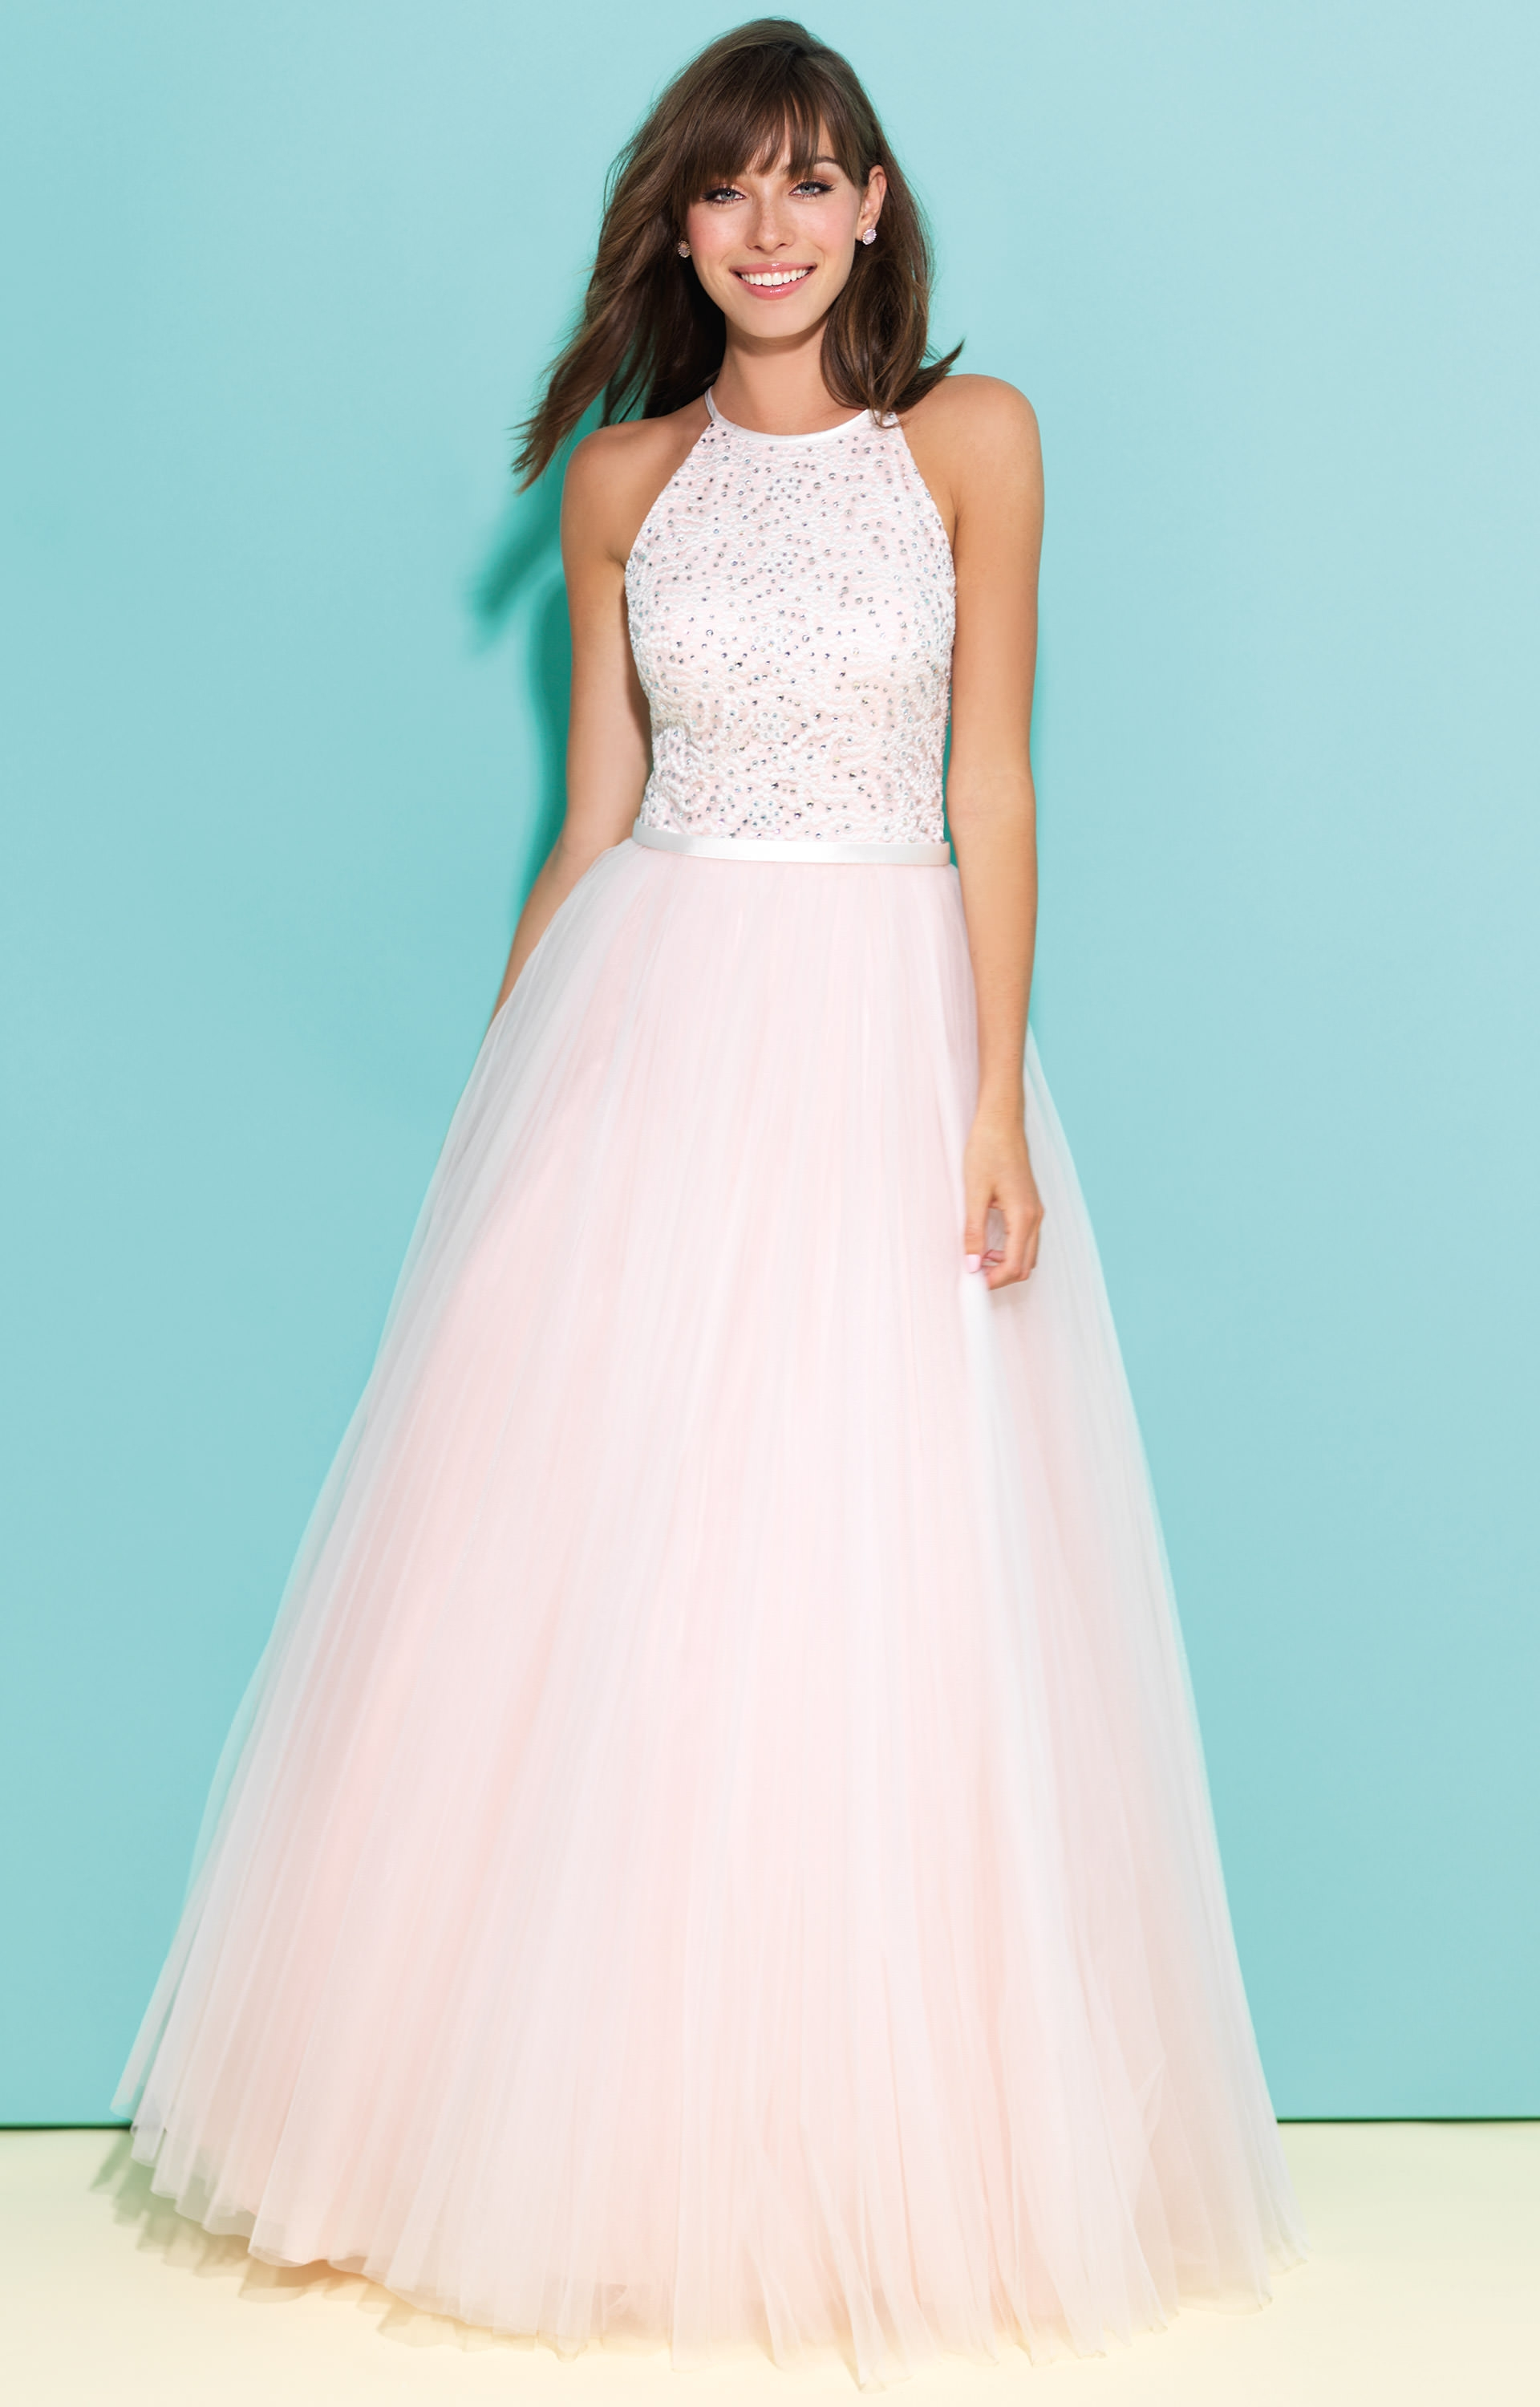 Madison James 17-243 - Lace Top with Keyhole Back Ballgown Prom Dress